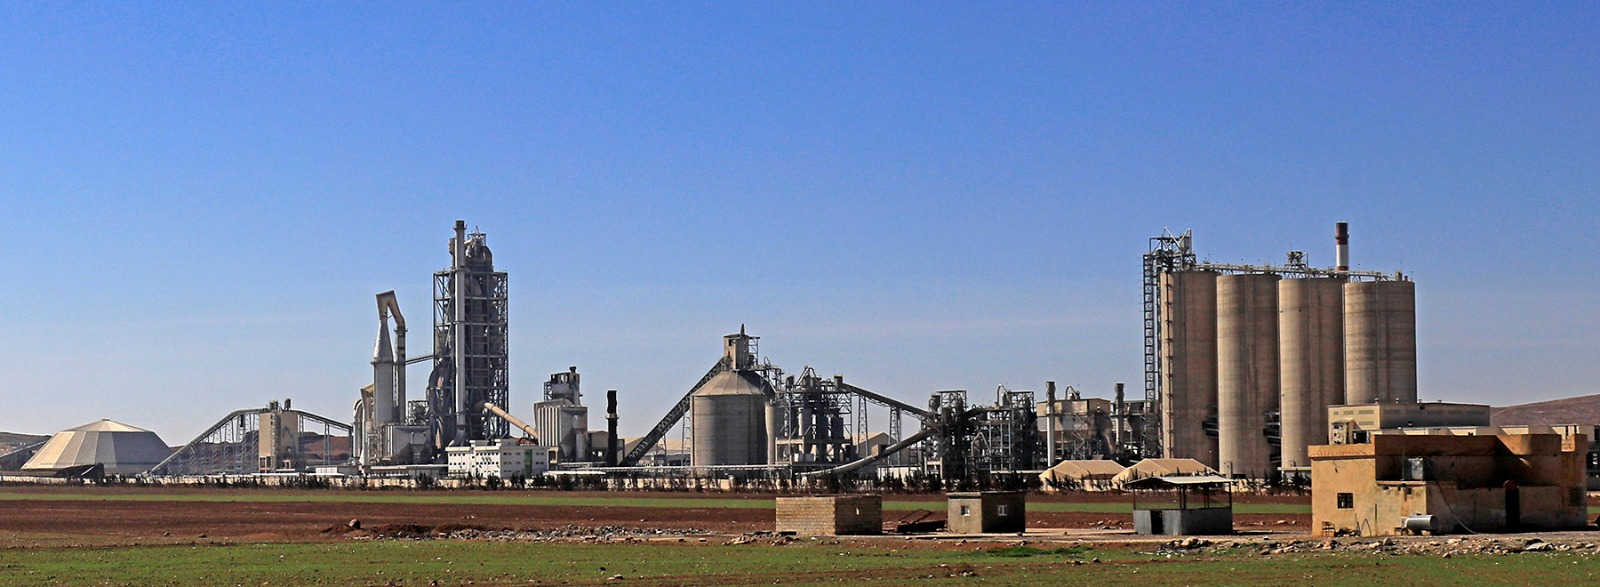 Syrie : « L'affaire Lafarge met en cause la structure même des multinationales »